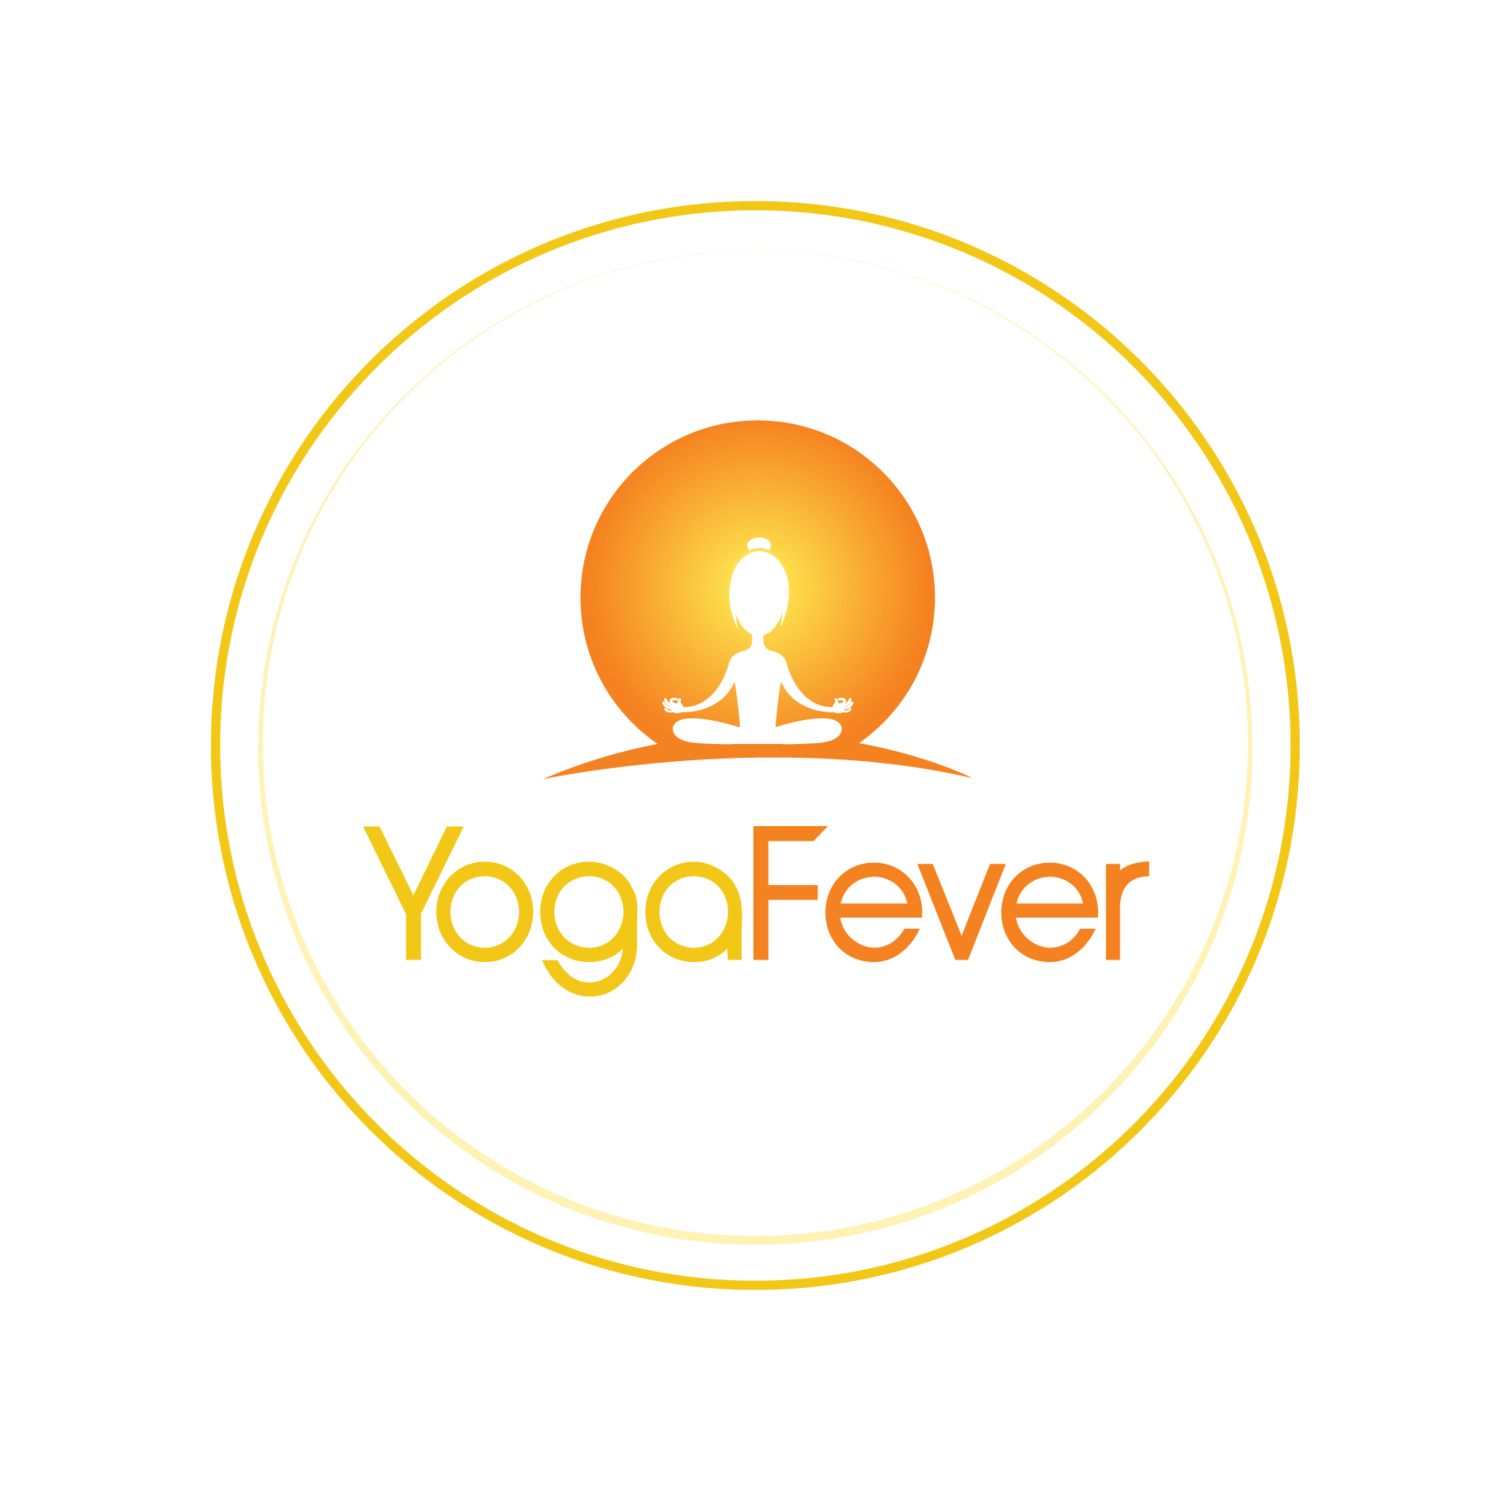 What to expect at your first yoga class hot yoga studio grand rapids mi yoga fever m4hsunfo